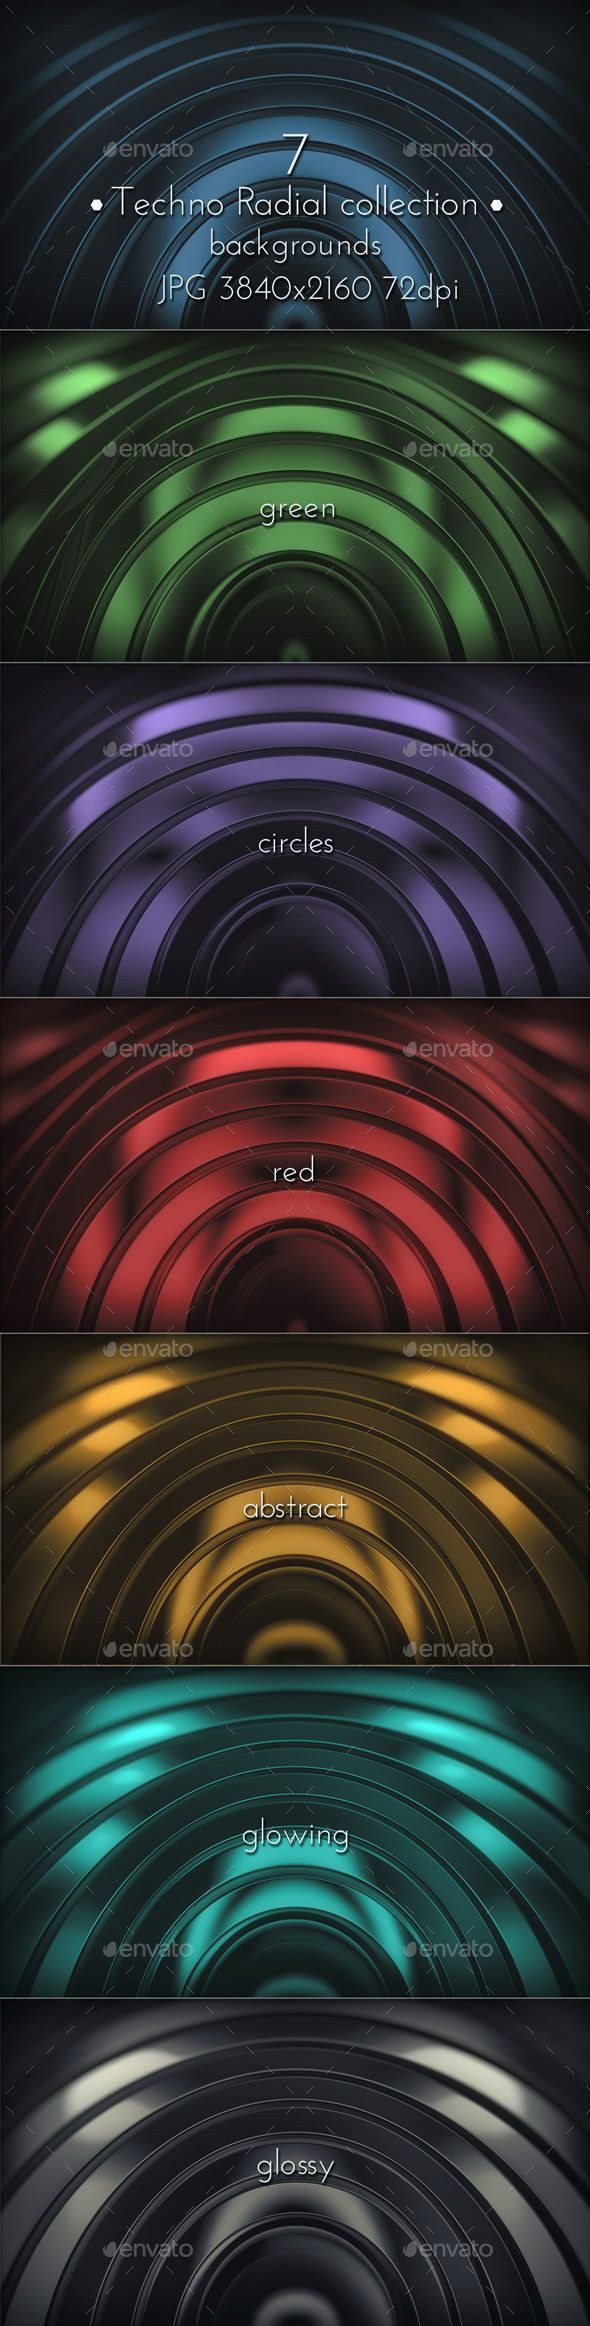 Modern Radial Techno Glossy Surface 3D Backgrounds. 7 JPG images, 3840×2160, 72 DPI.